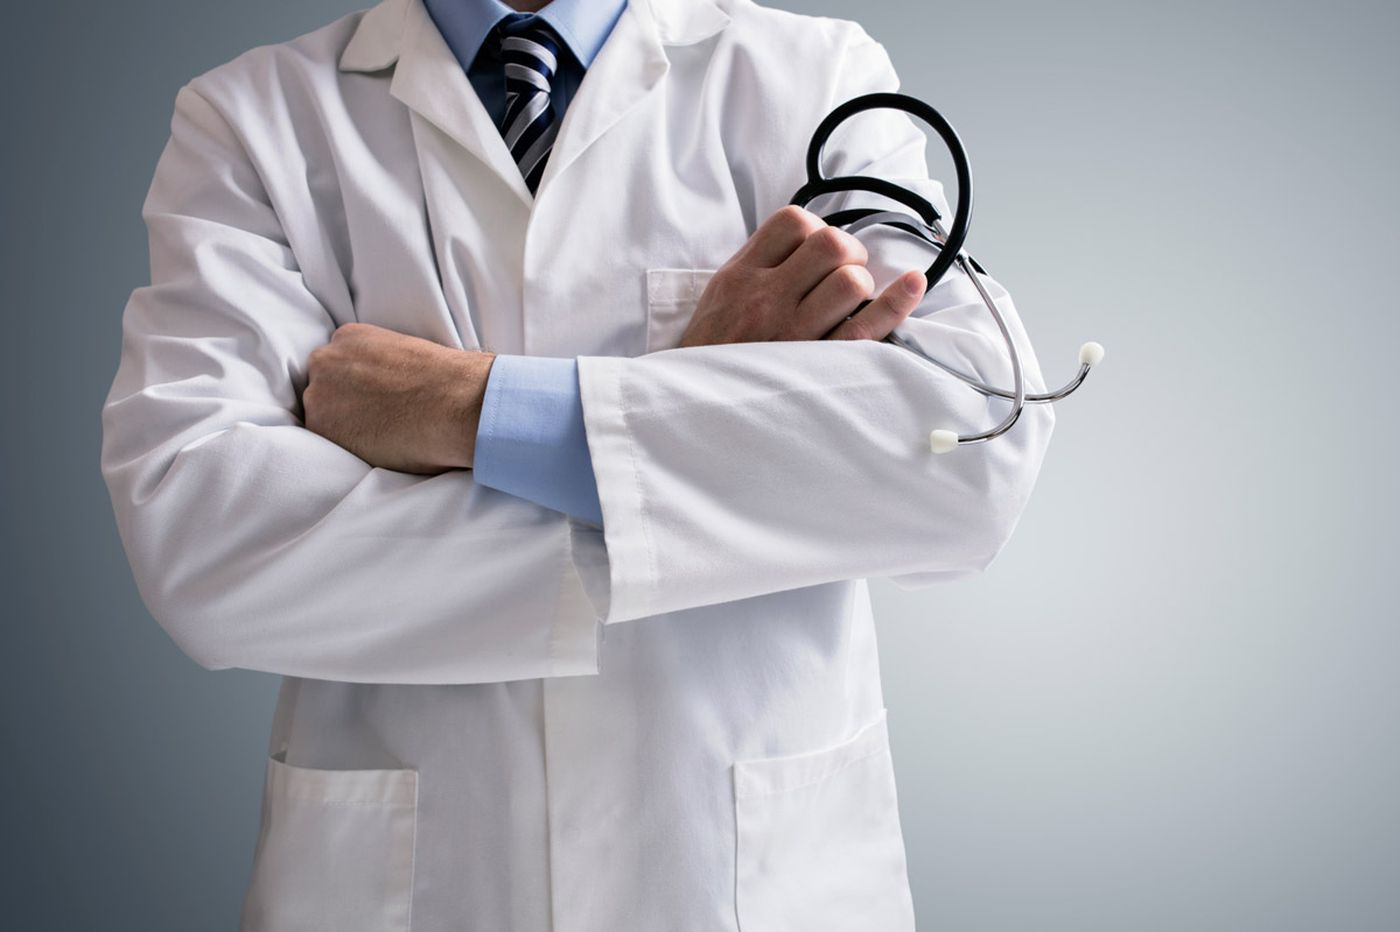 Q&A: What does a diagnostic radiologist do?